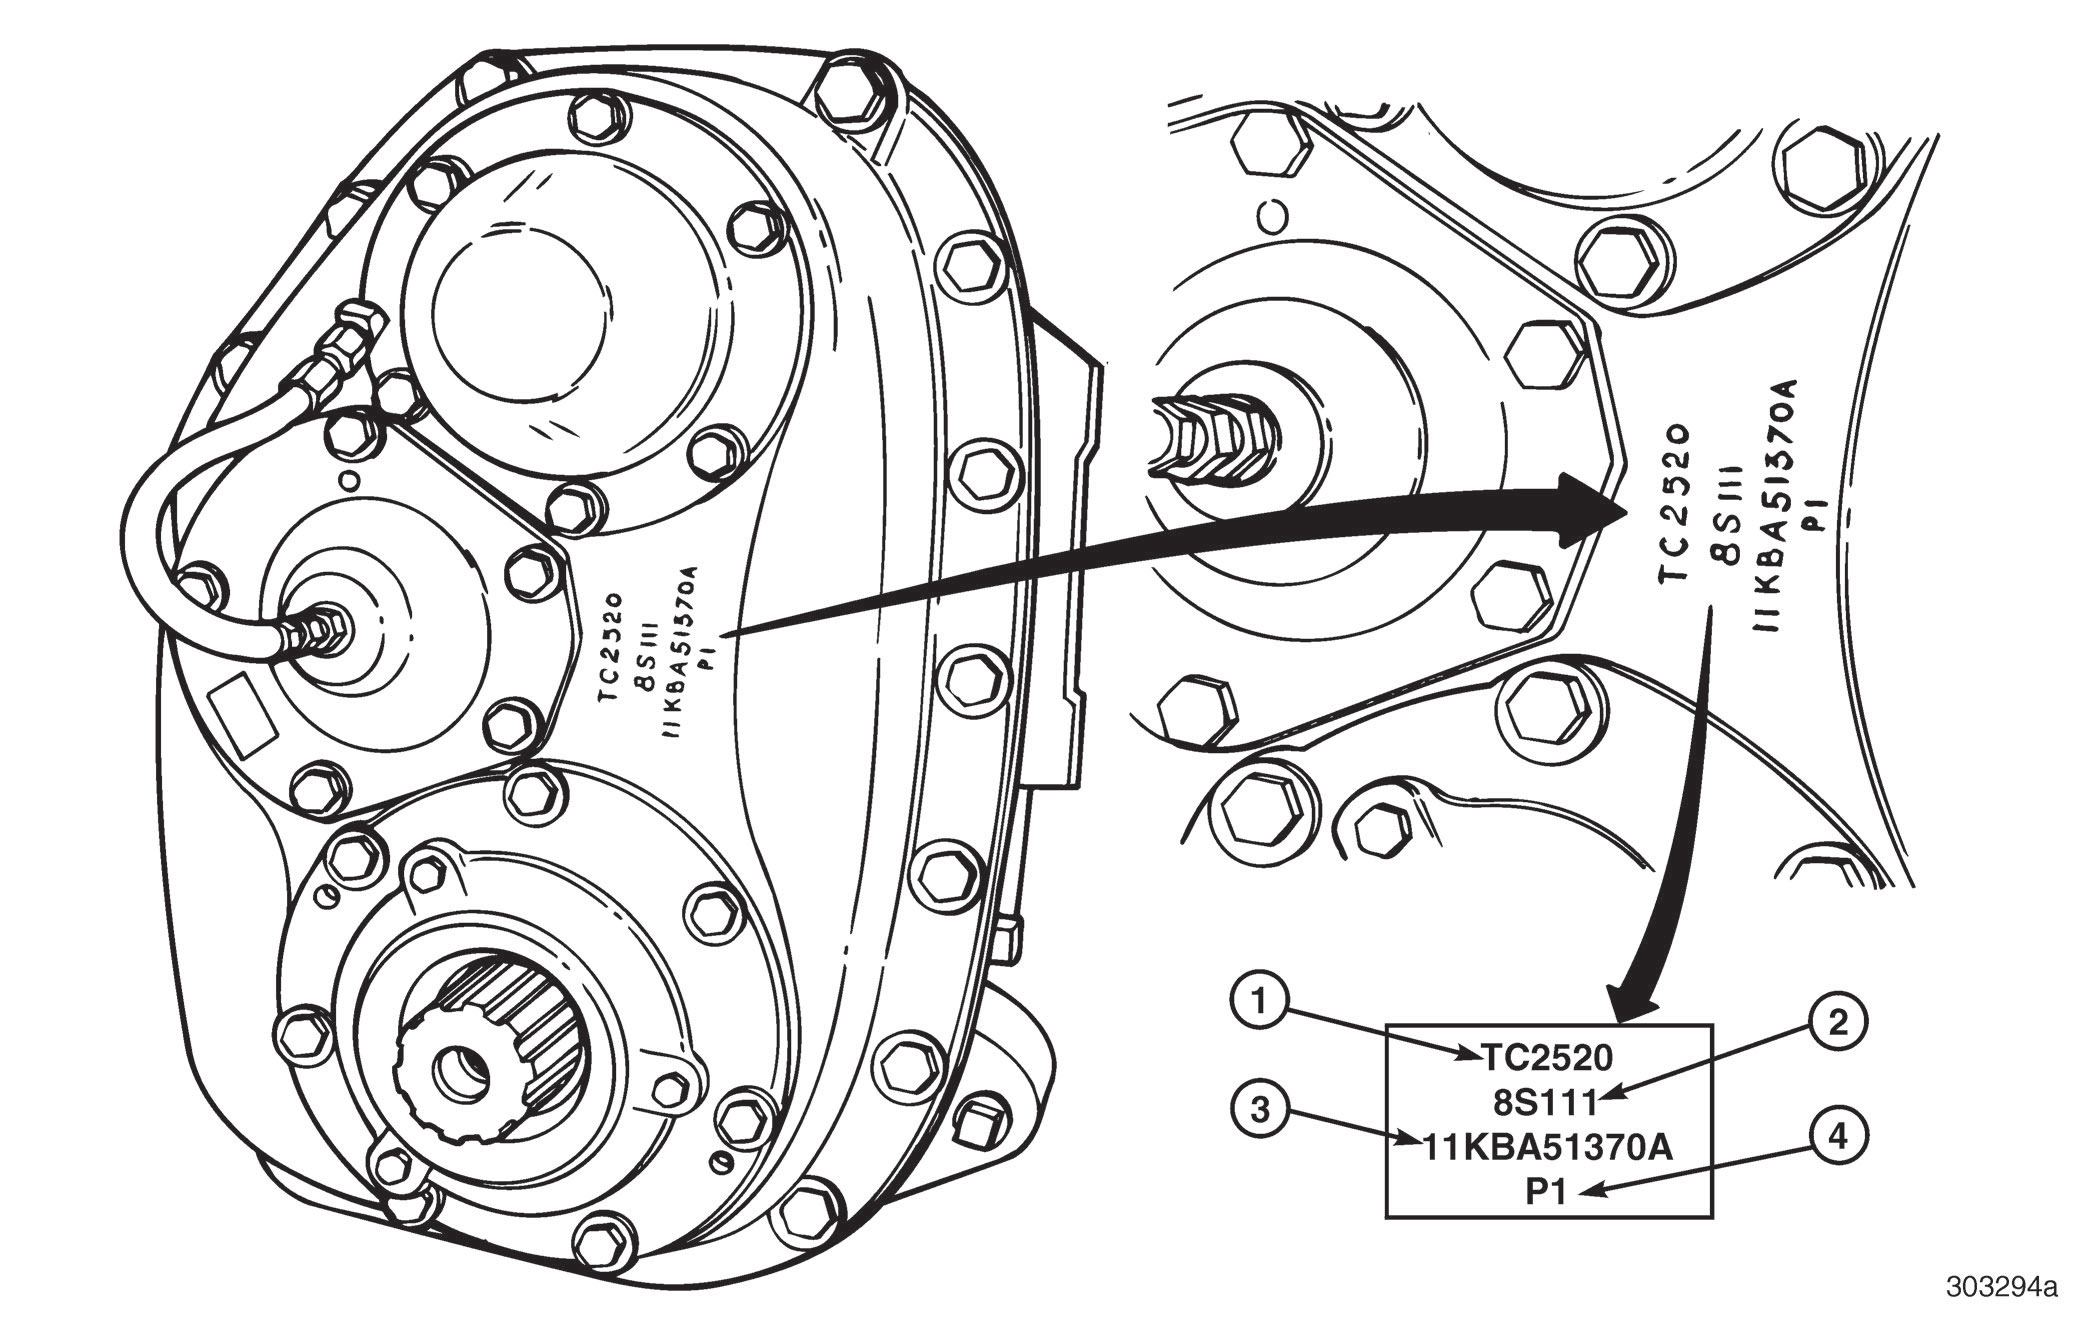 Mack transfer case identification